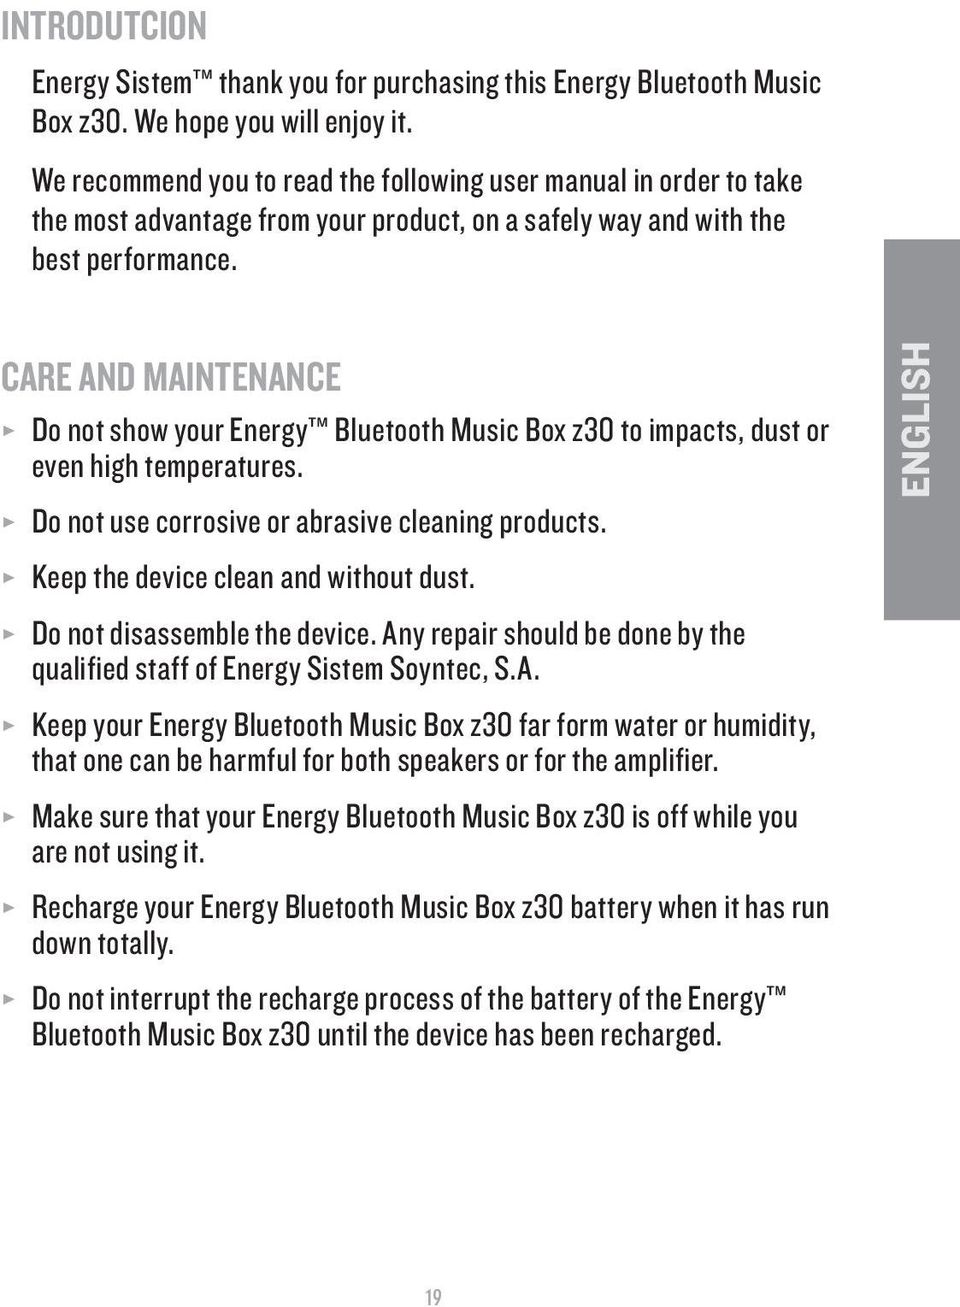 CARE AND MAINTENANCE Do not show your Energy Bluetooth Music Box z30 to impacts, dust or even high temperatures. Do not use corrosive or abrasive cleaning products.